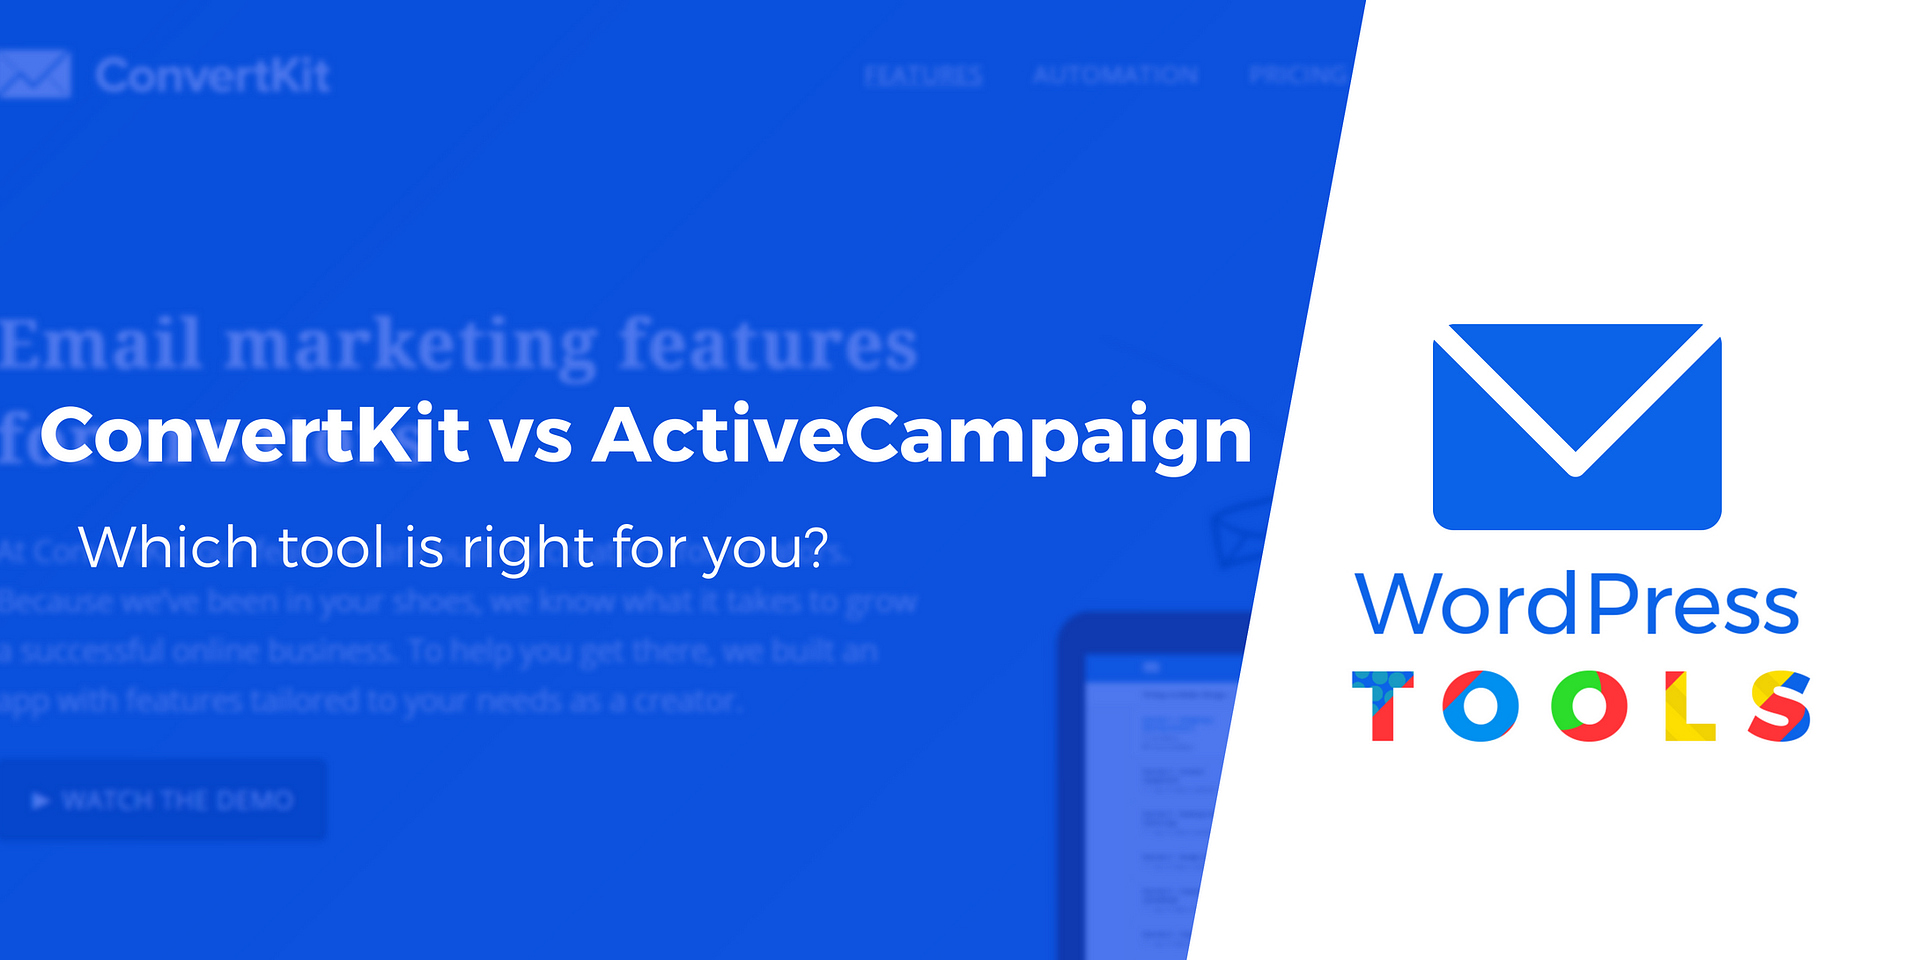 What Does Activecampaign Vs Convertkit Mean?